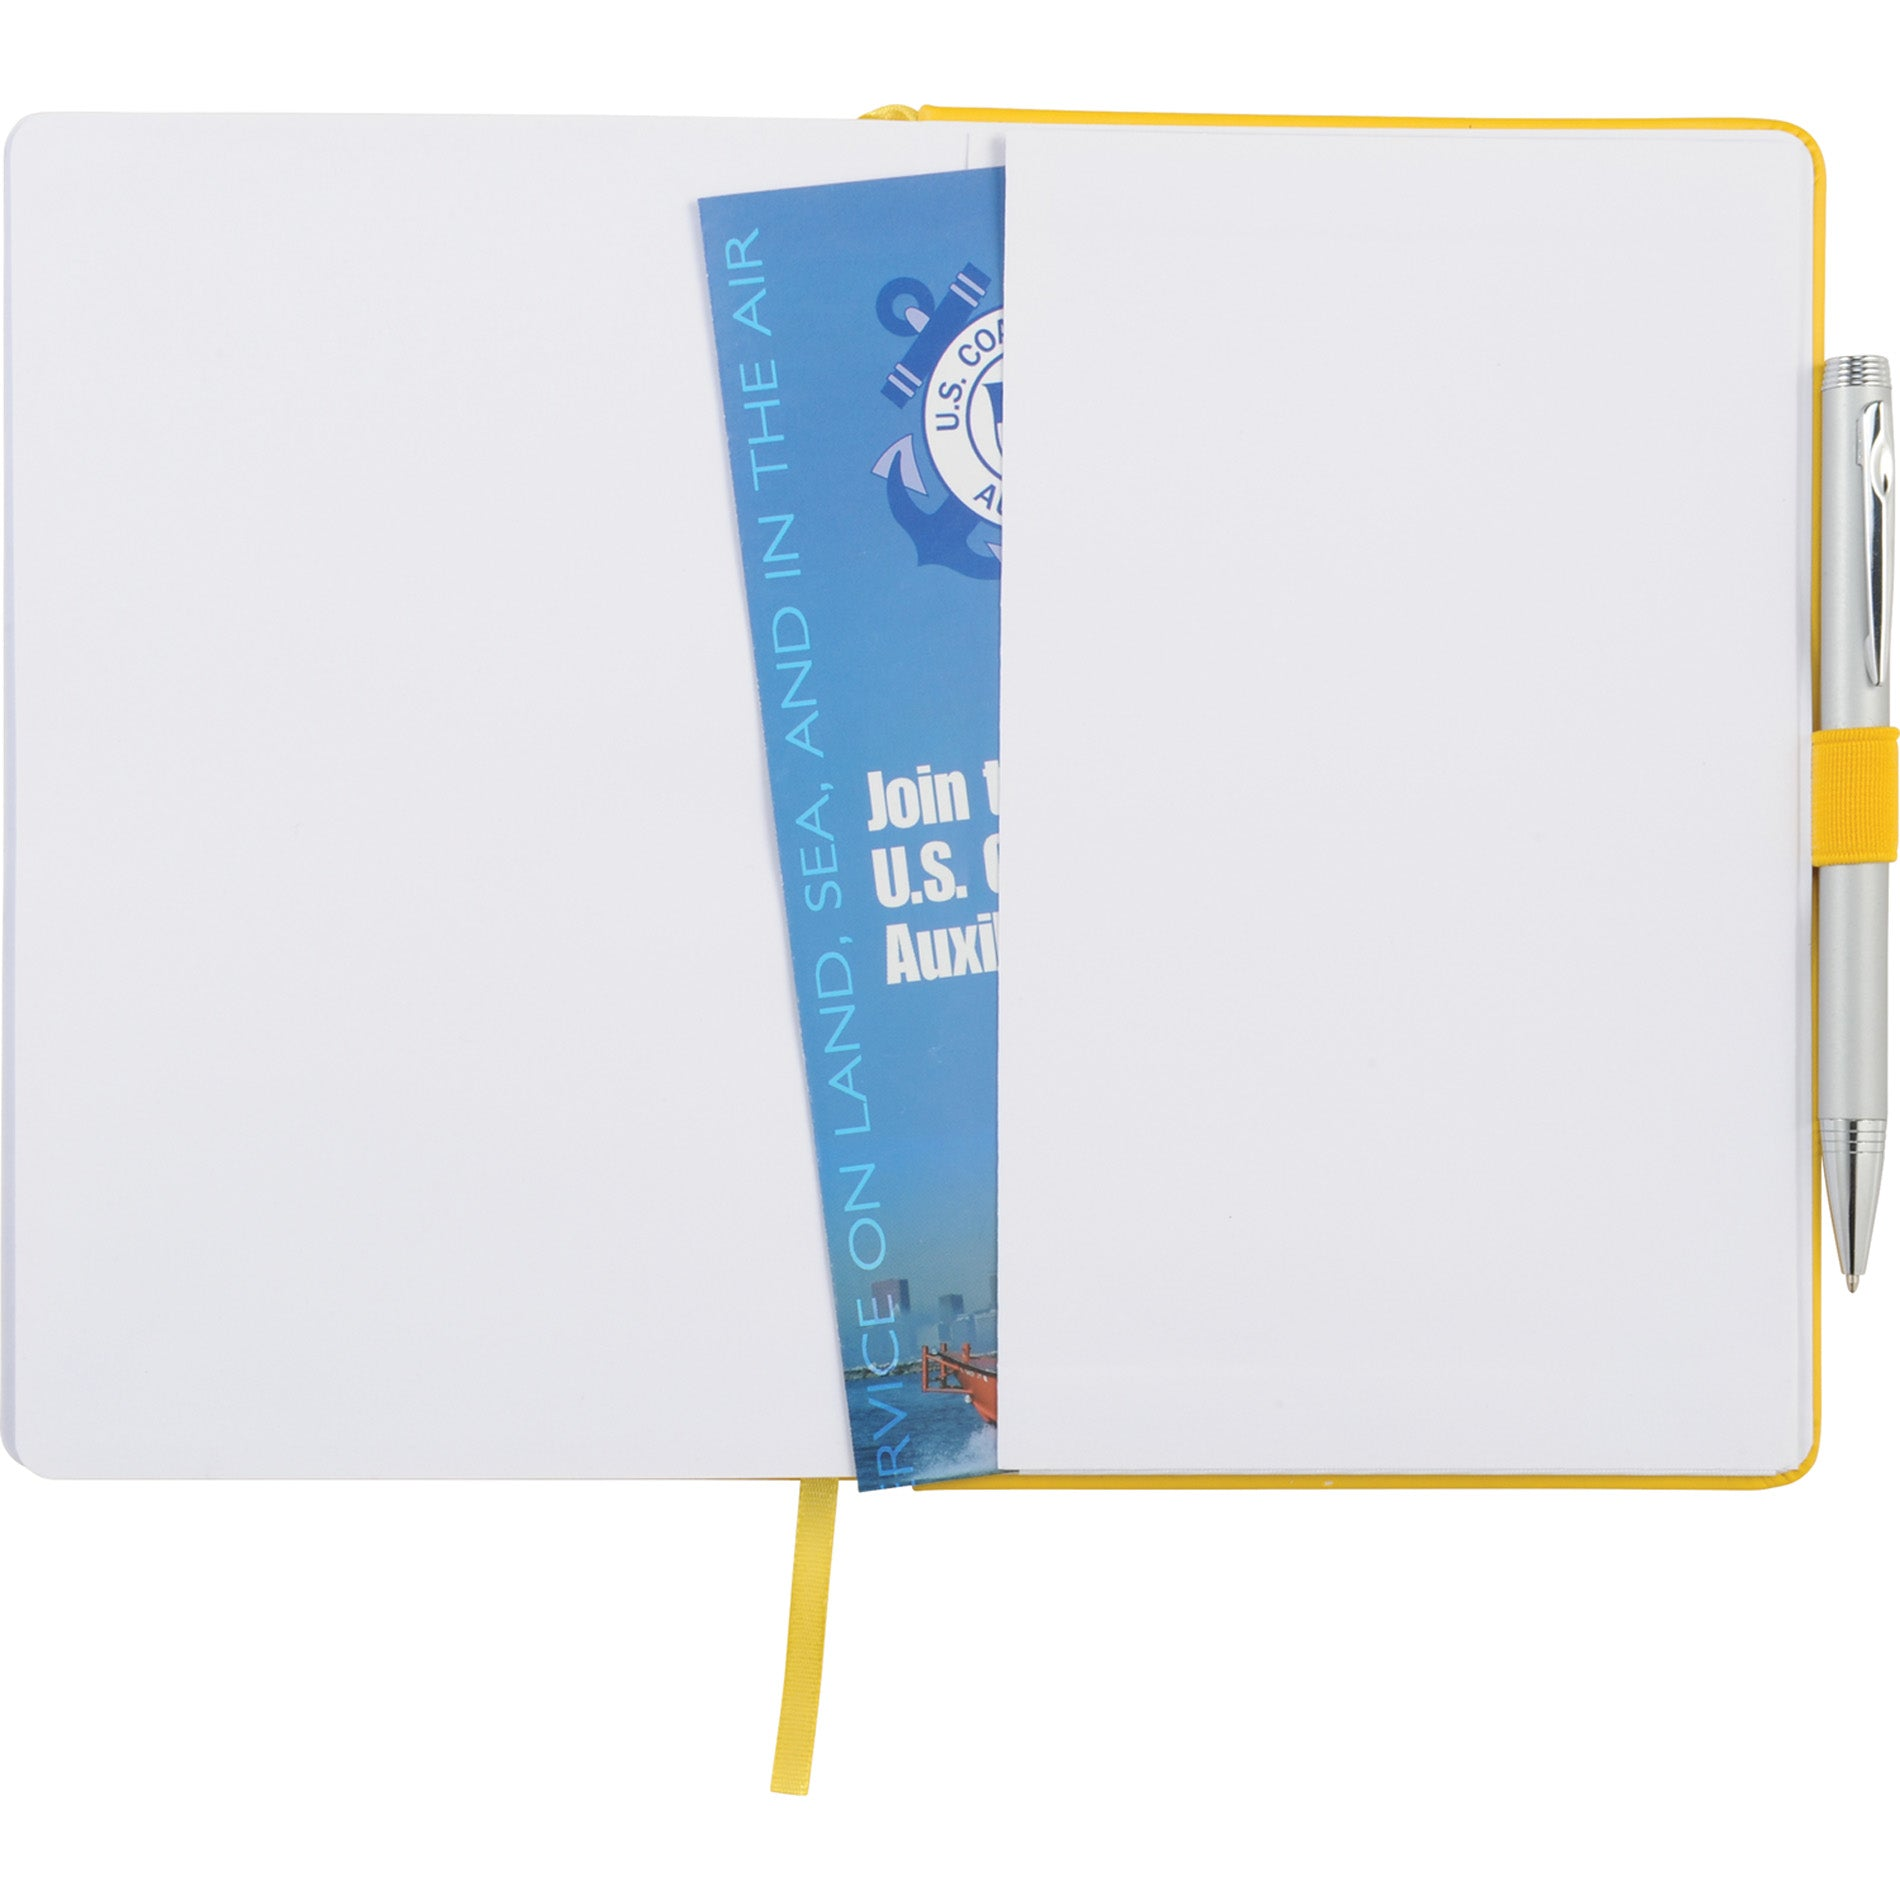 LEEDS NOVA BOUND JOURNAL BOOK BUNDLE SET